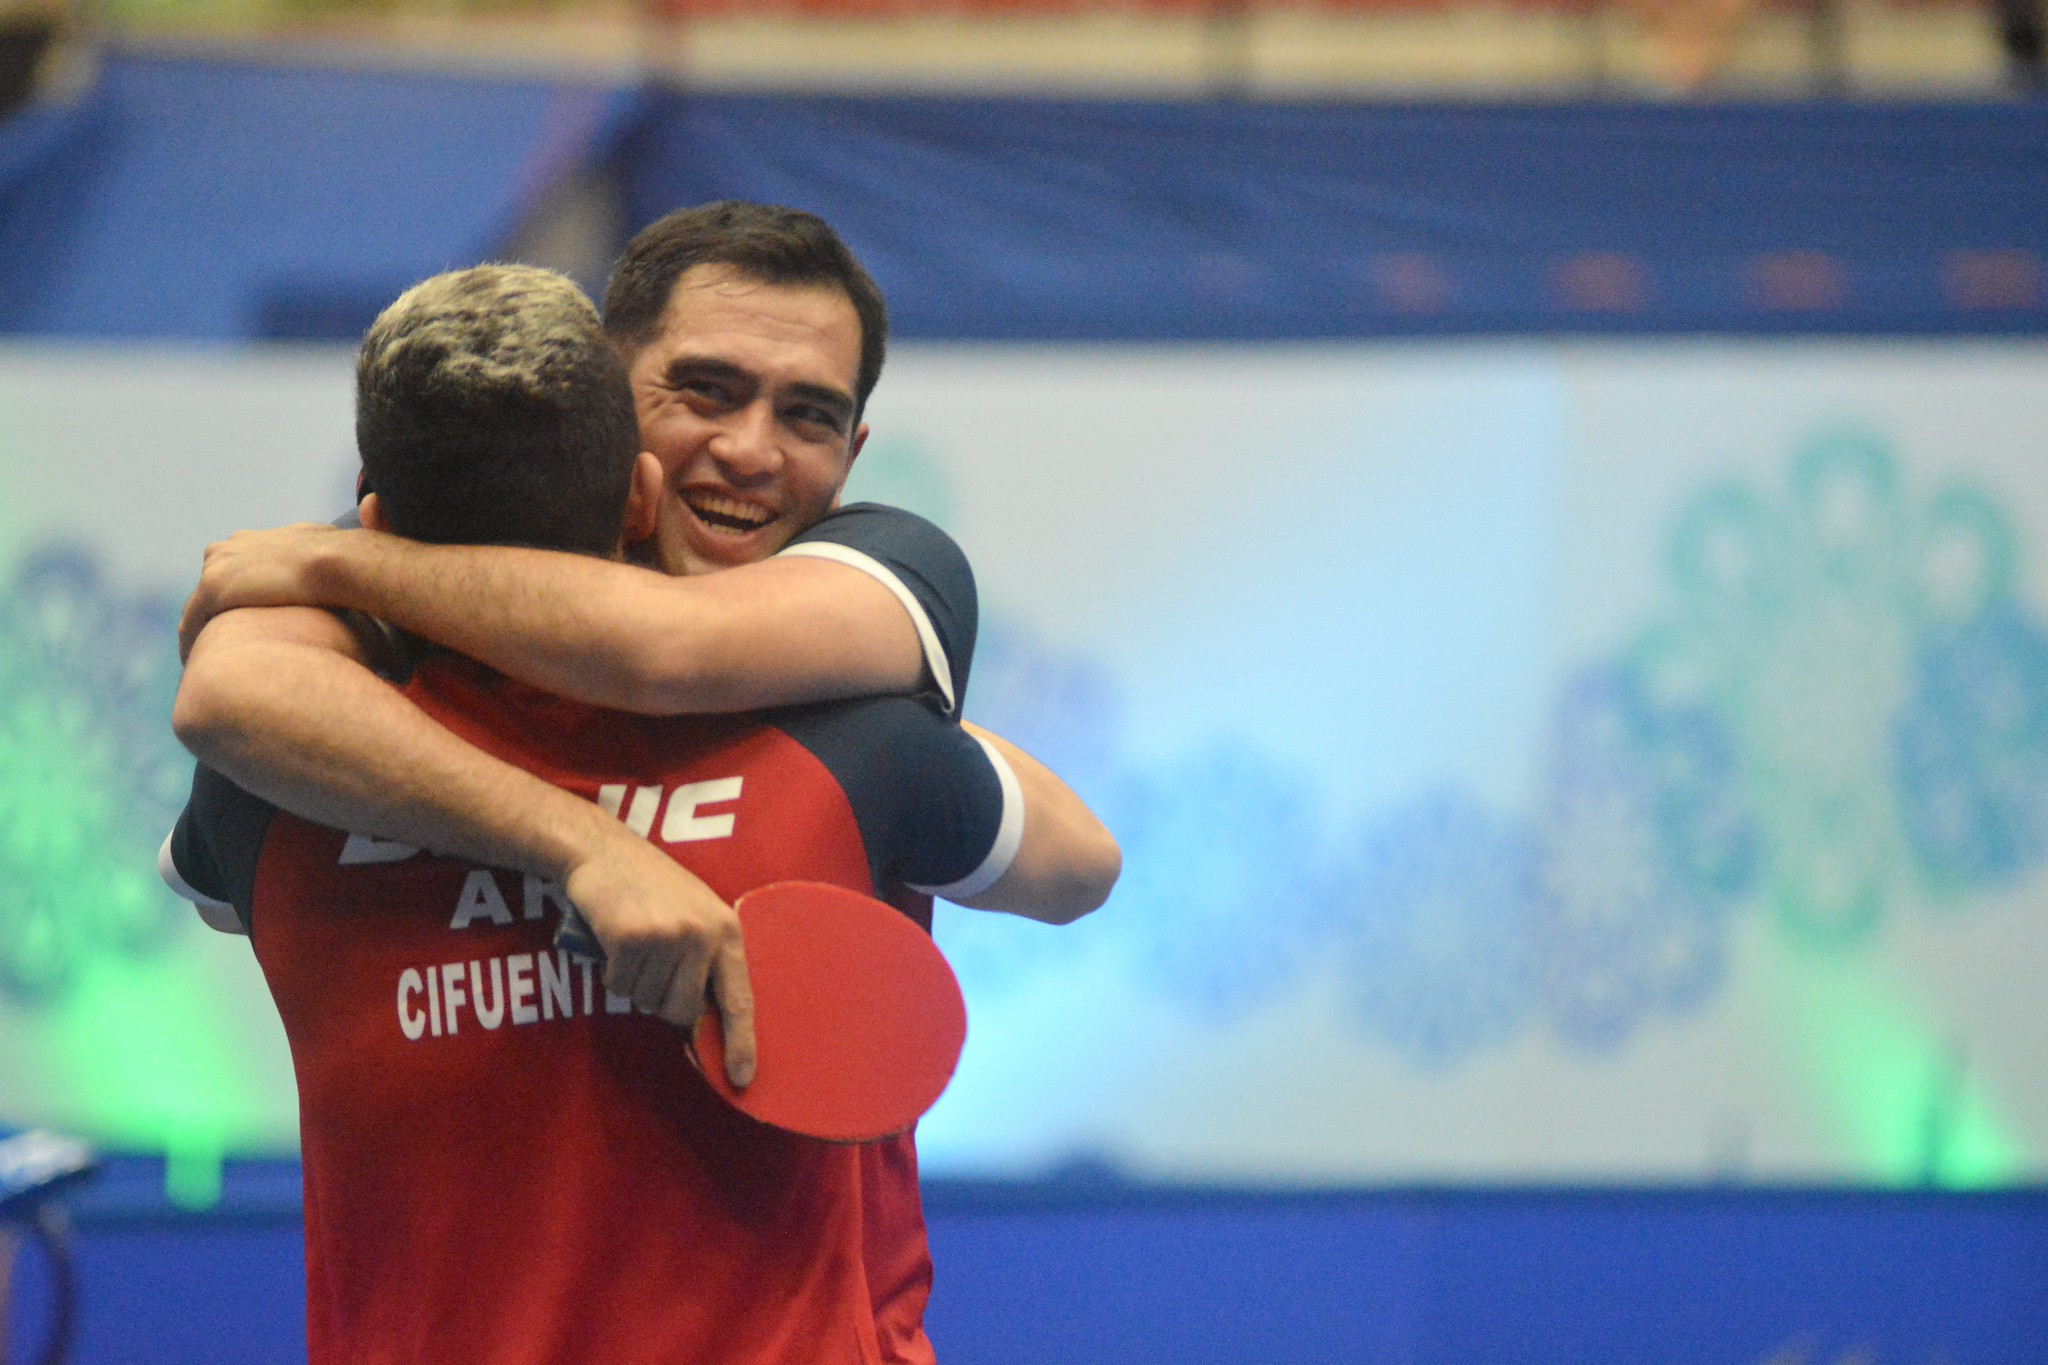 Gaston Alto and Horacio Cifuentes of Argentina won the mixed doubles title ©ITTF